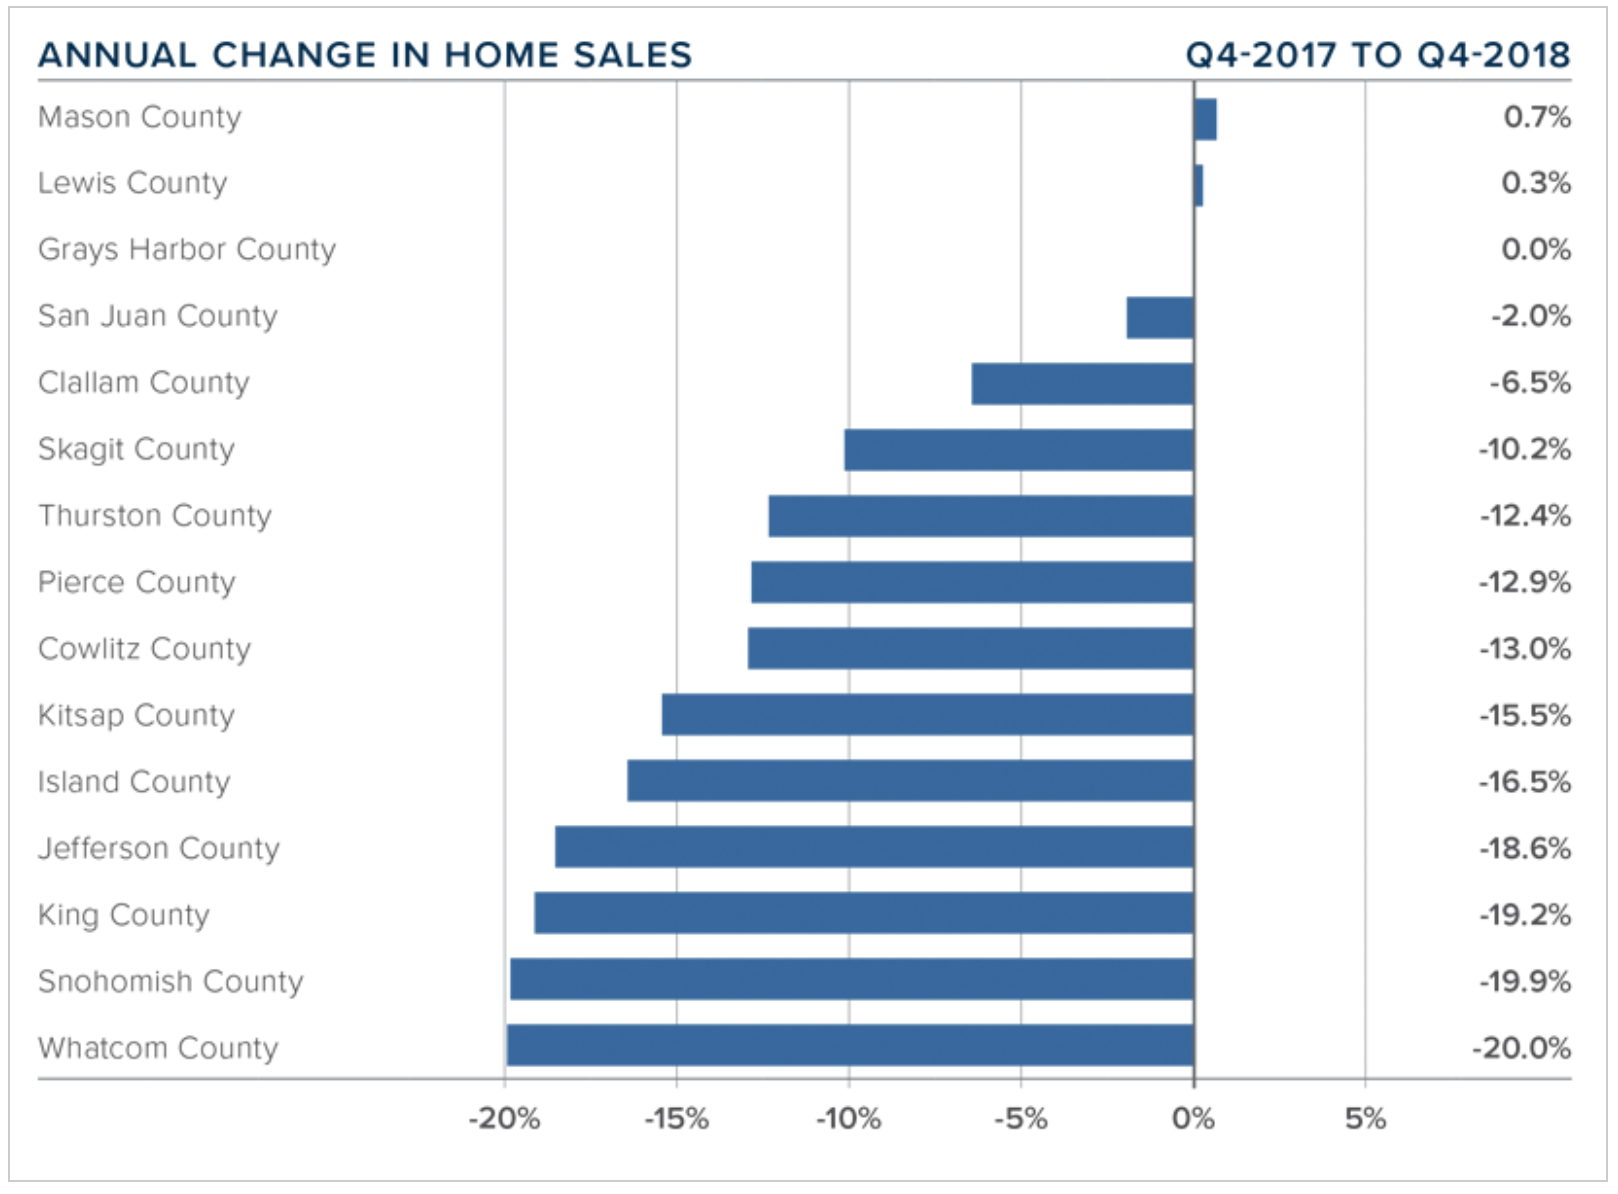 q4-2018-western-washington-real-estate-annual-change-in-home-sales.png